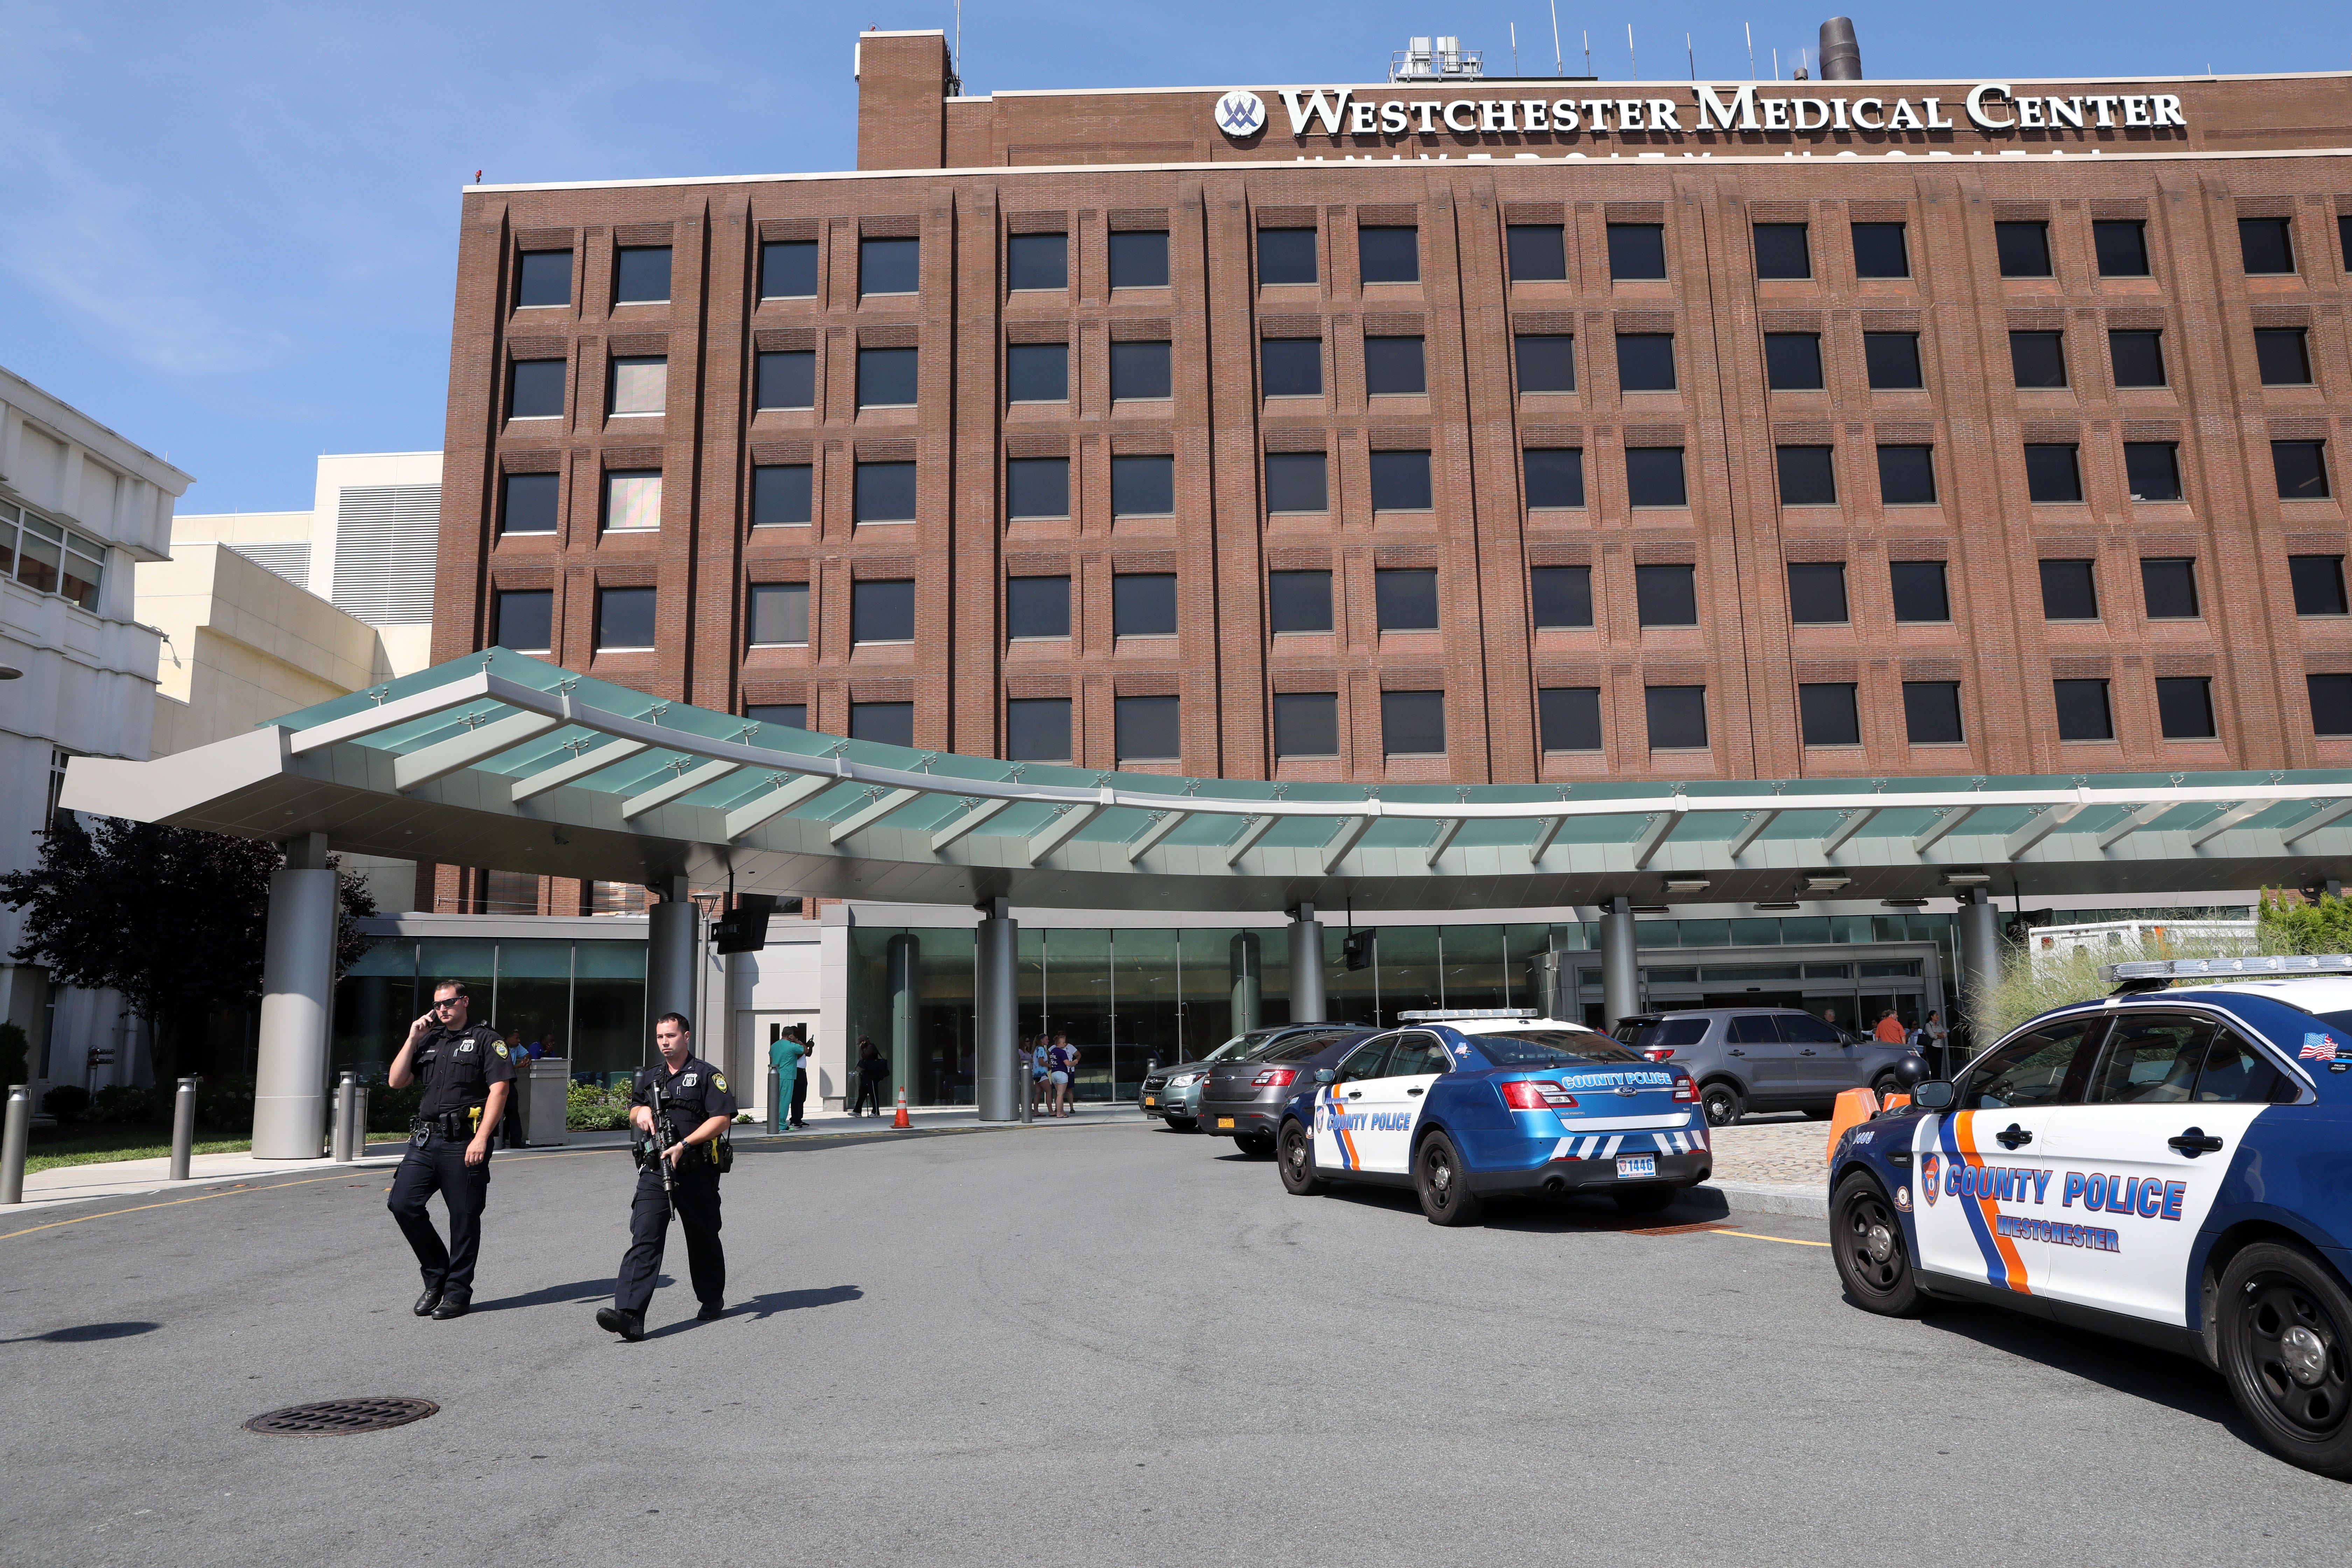 Westchester Medical shooting: What we know, and what we don't